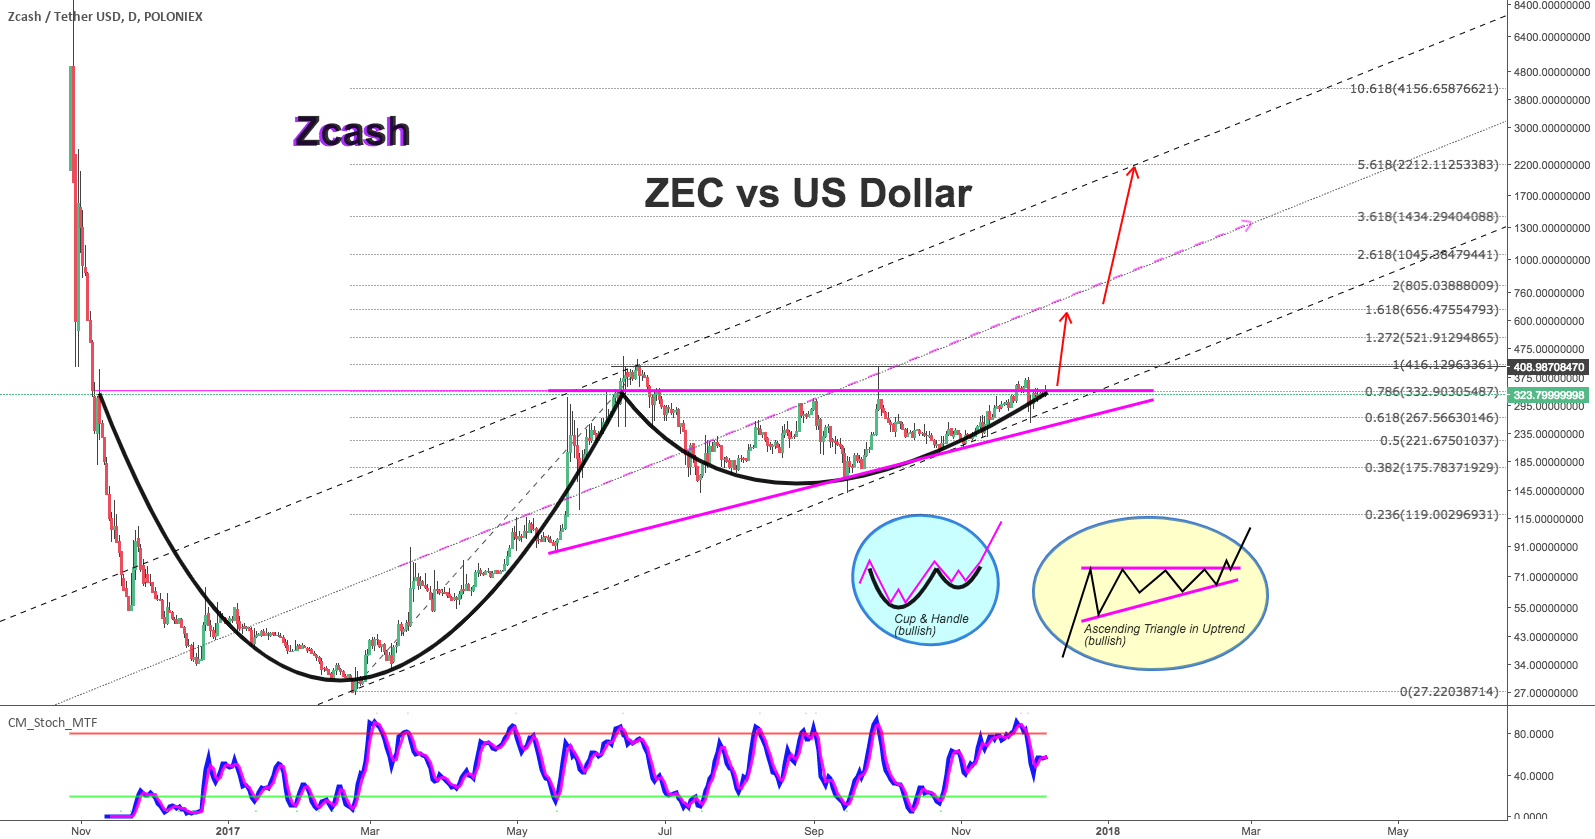 ZEC vs US Dollar Huge Prices are Come